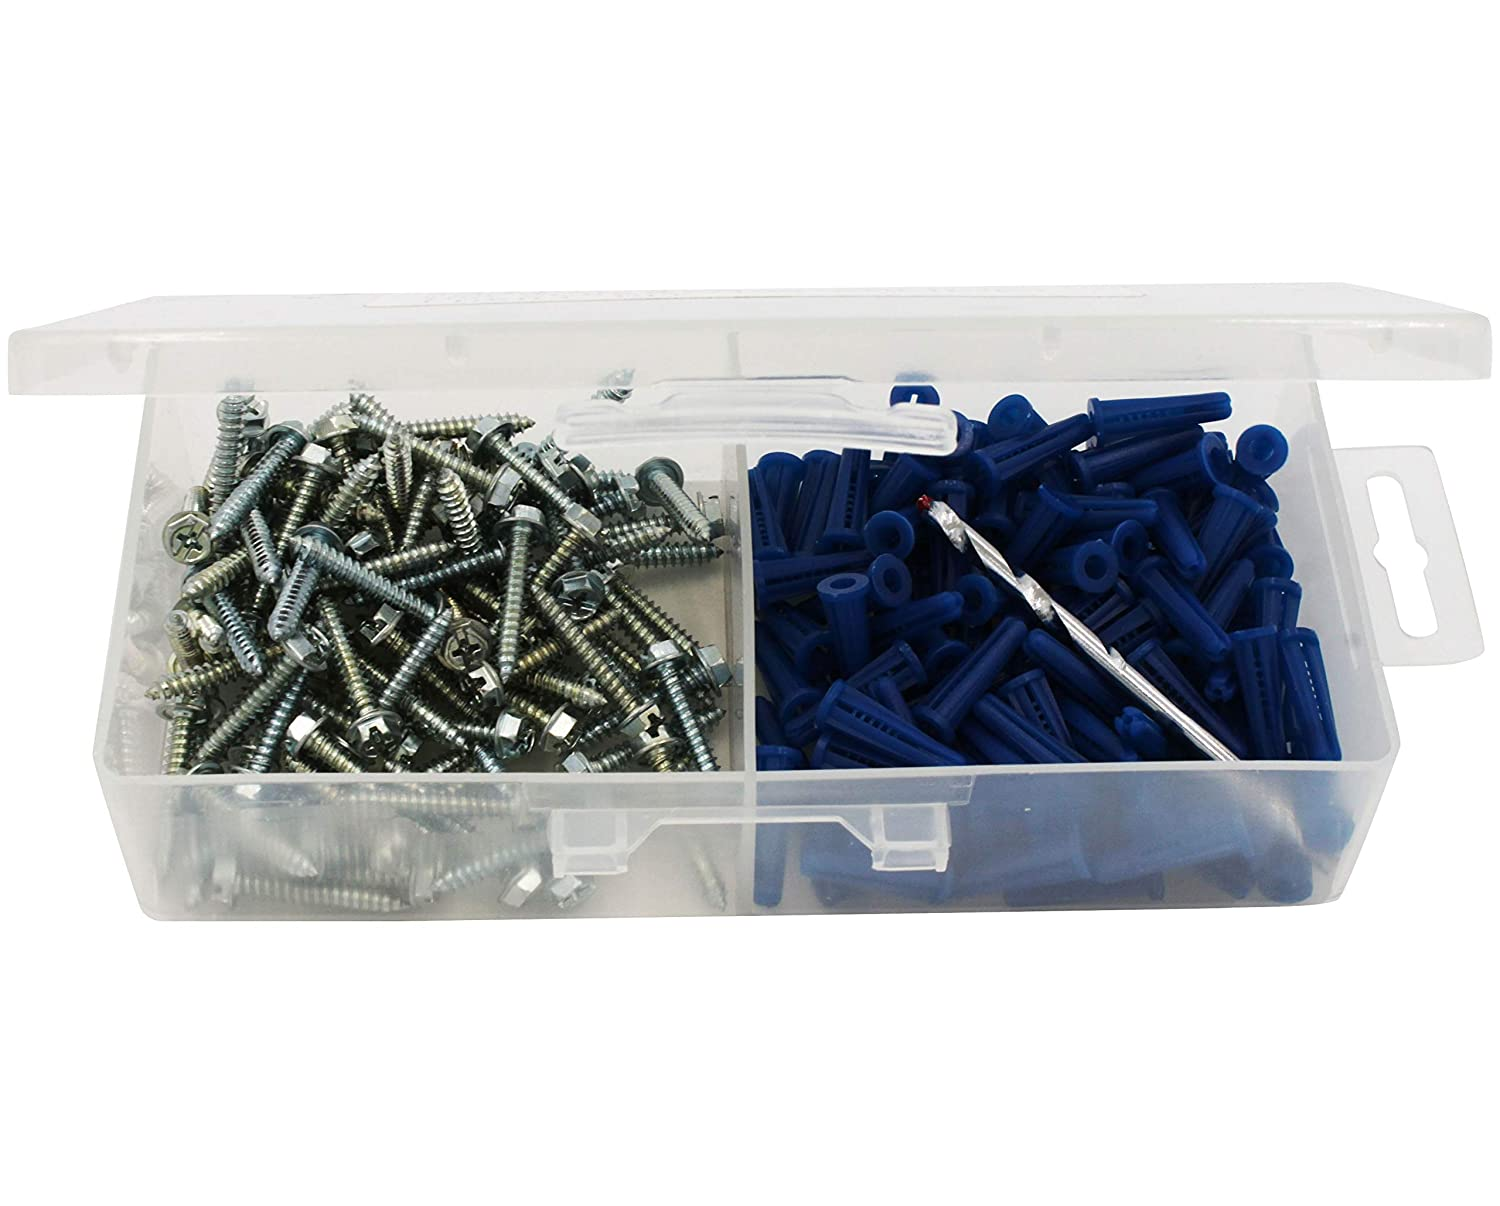 Plastic Drywall Anchor Kit with 8x1 Screws and 3//16 Drill Bit 100-Pack